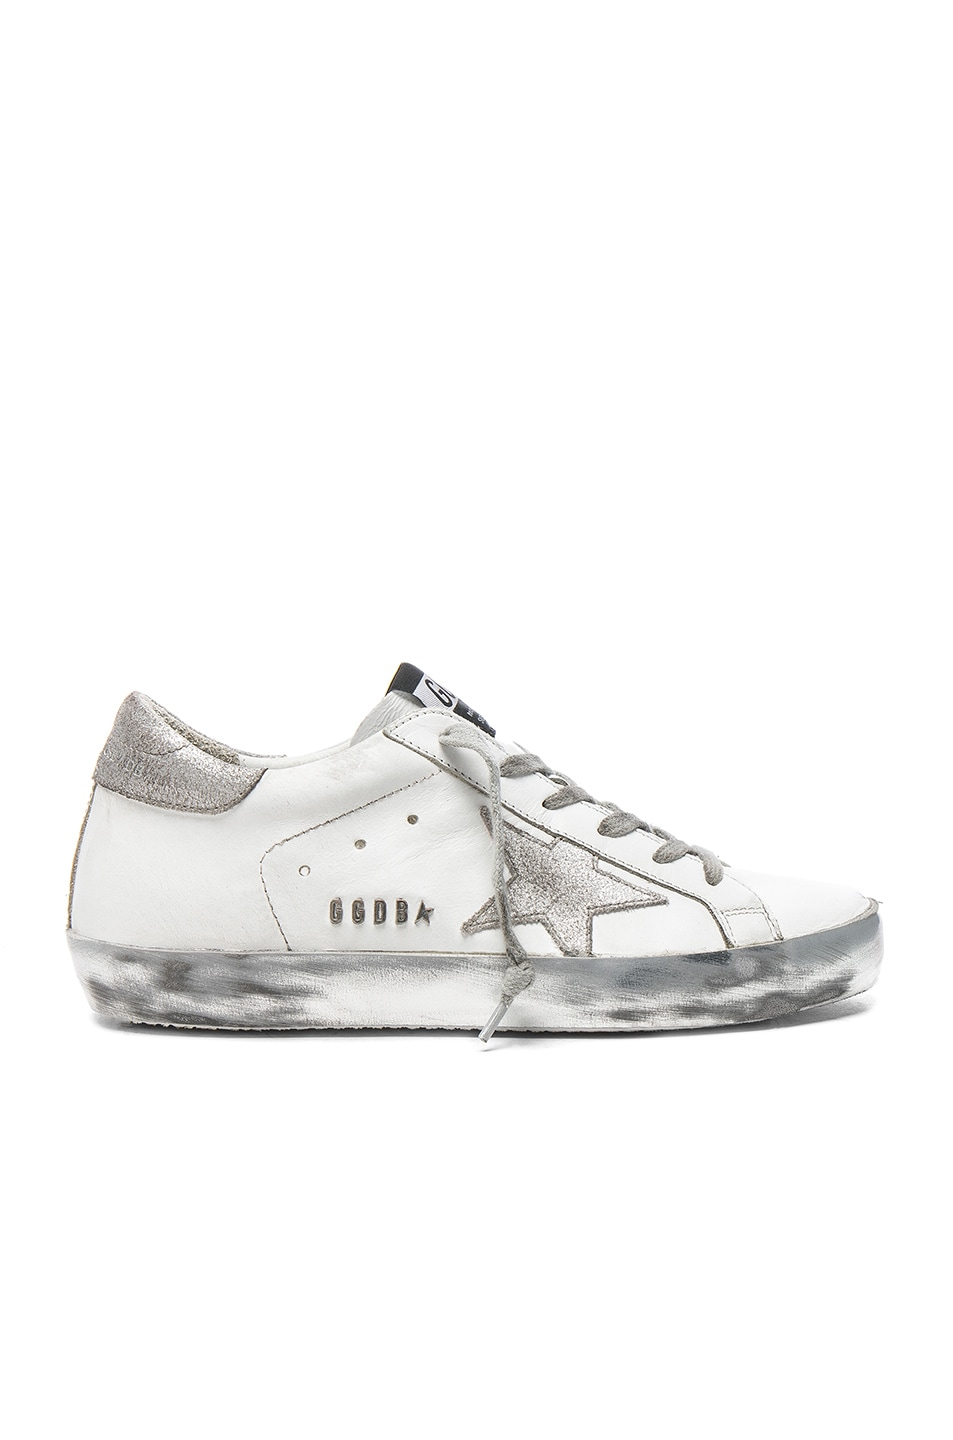 Image 1 of Golden Goose Leather Superstar Low Sneakers in Sparkle White & Silver